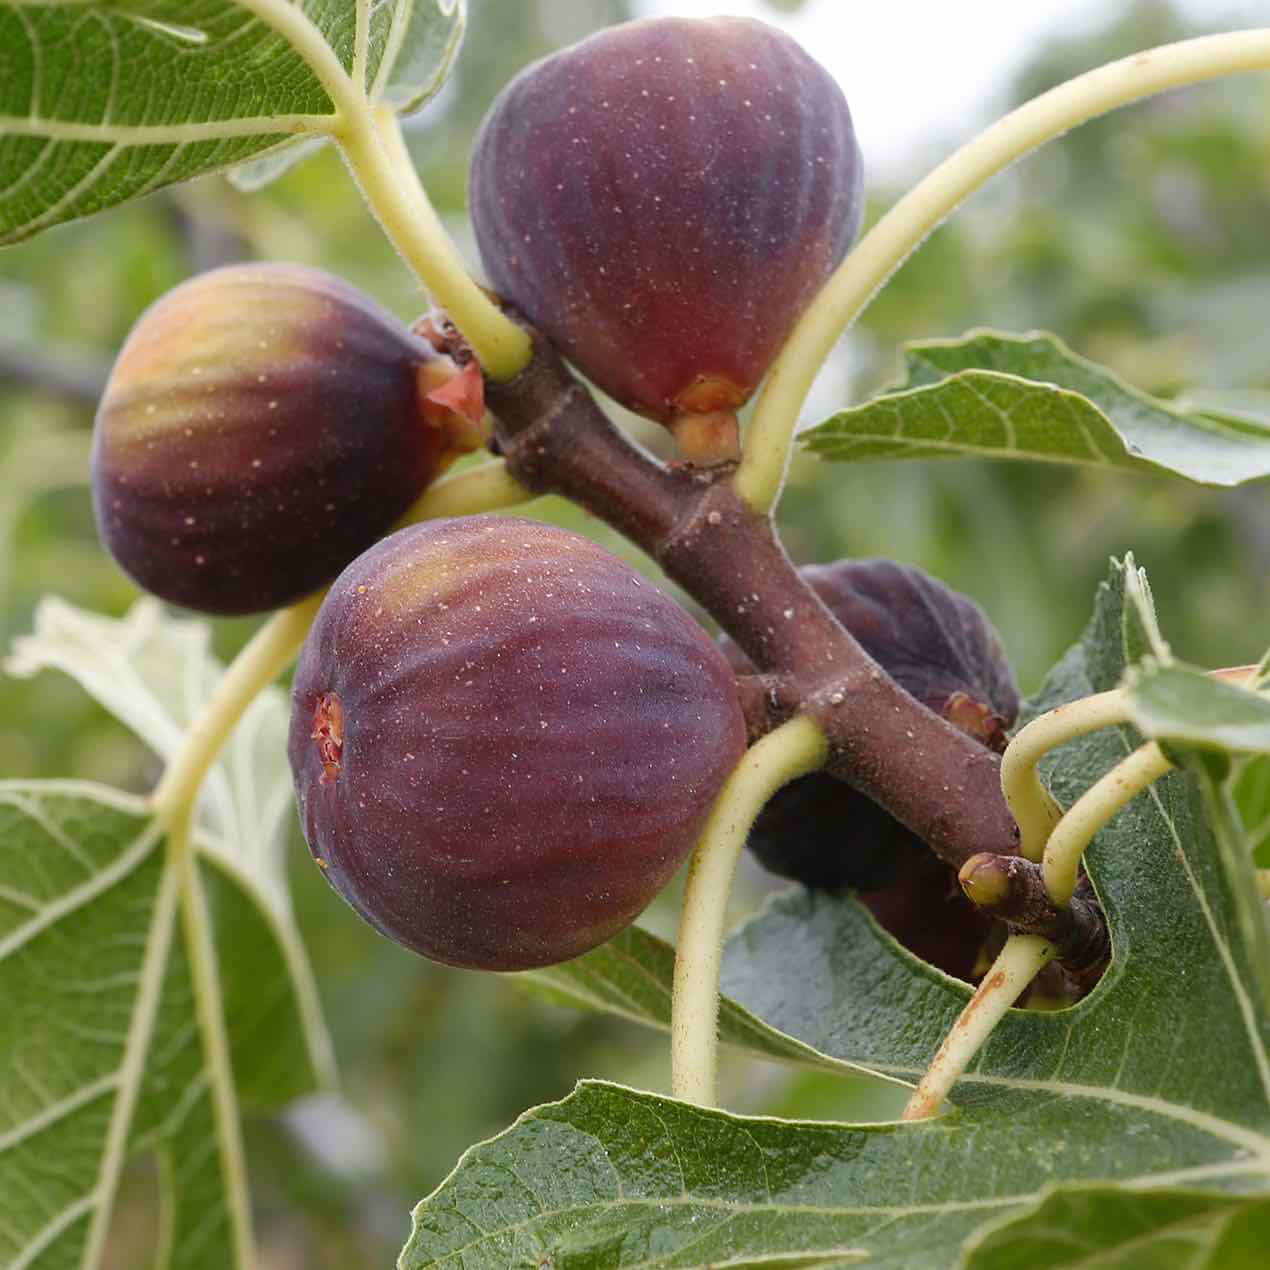 How to Prune Guava Trees